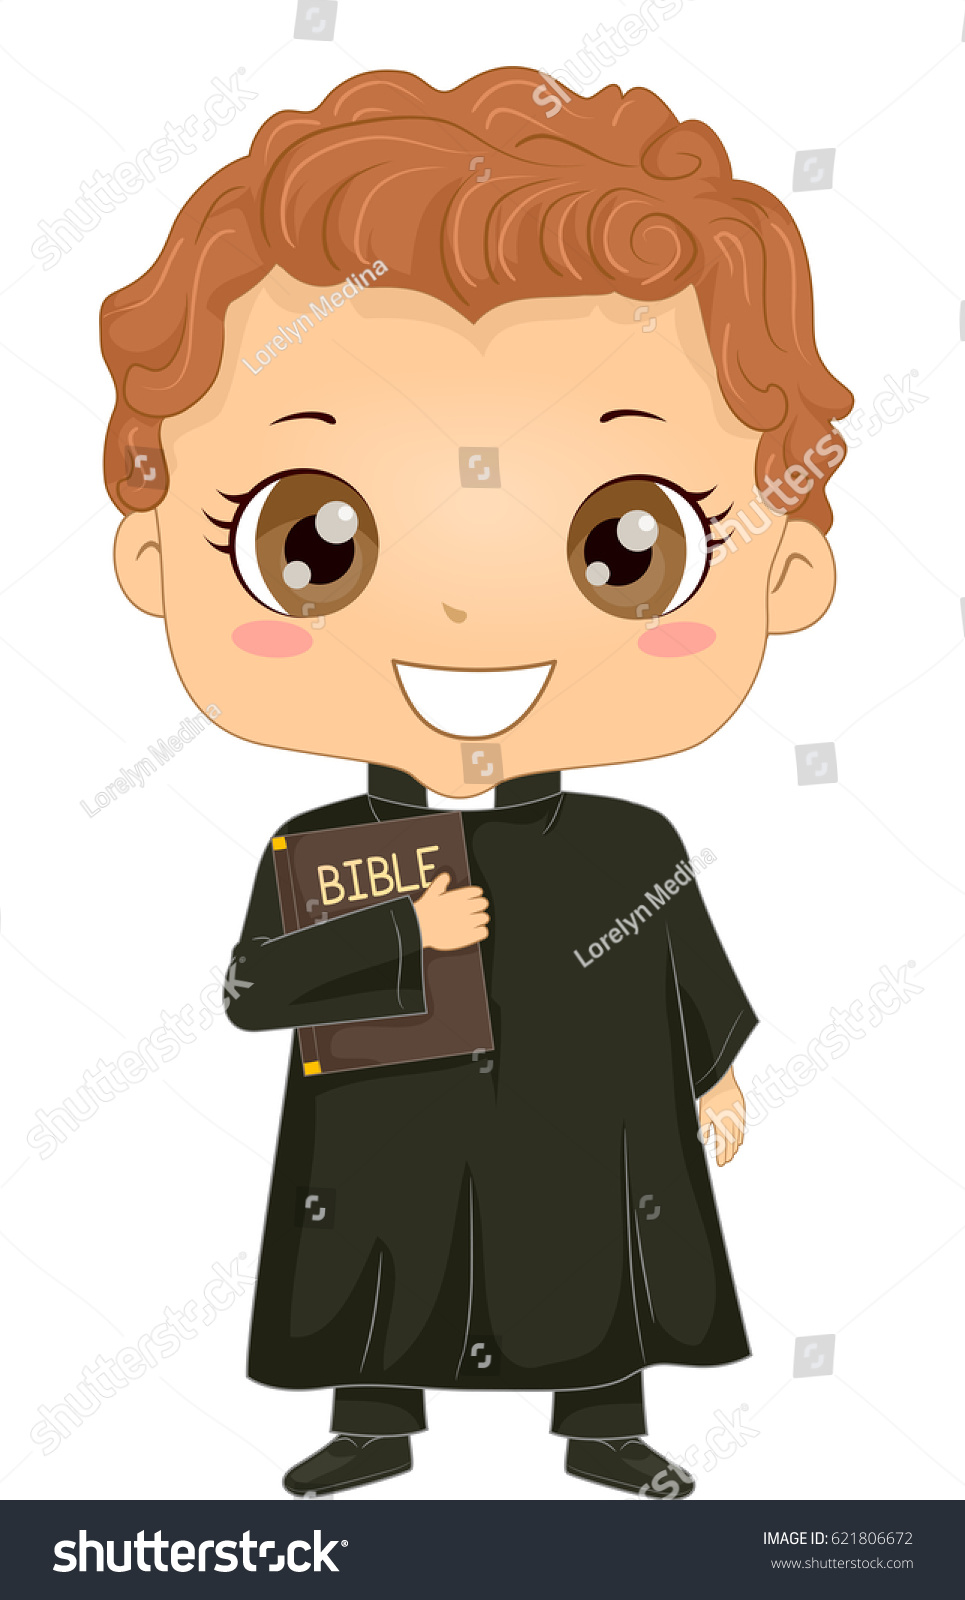 bible story illustration little boy wearing stock vector 621806672